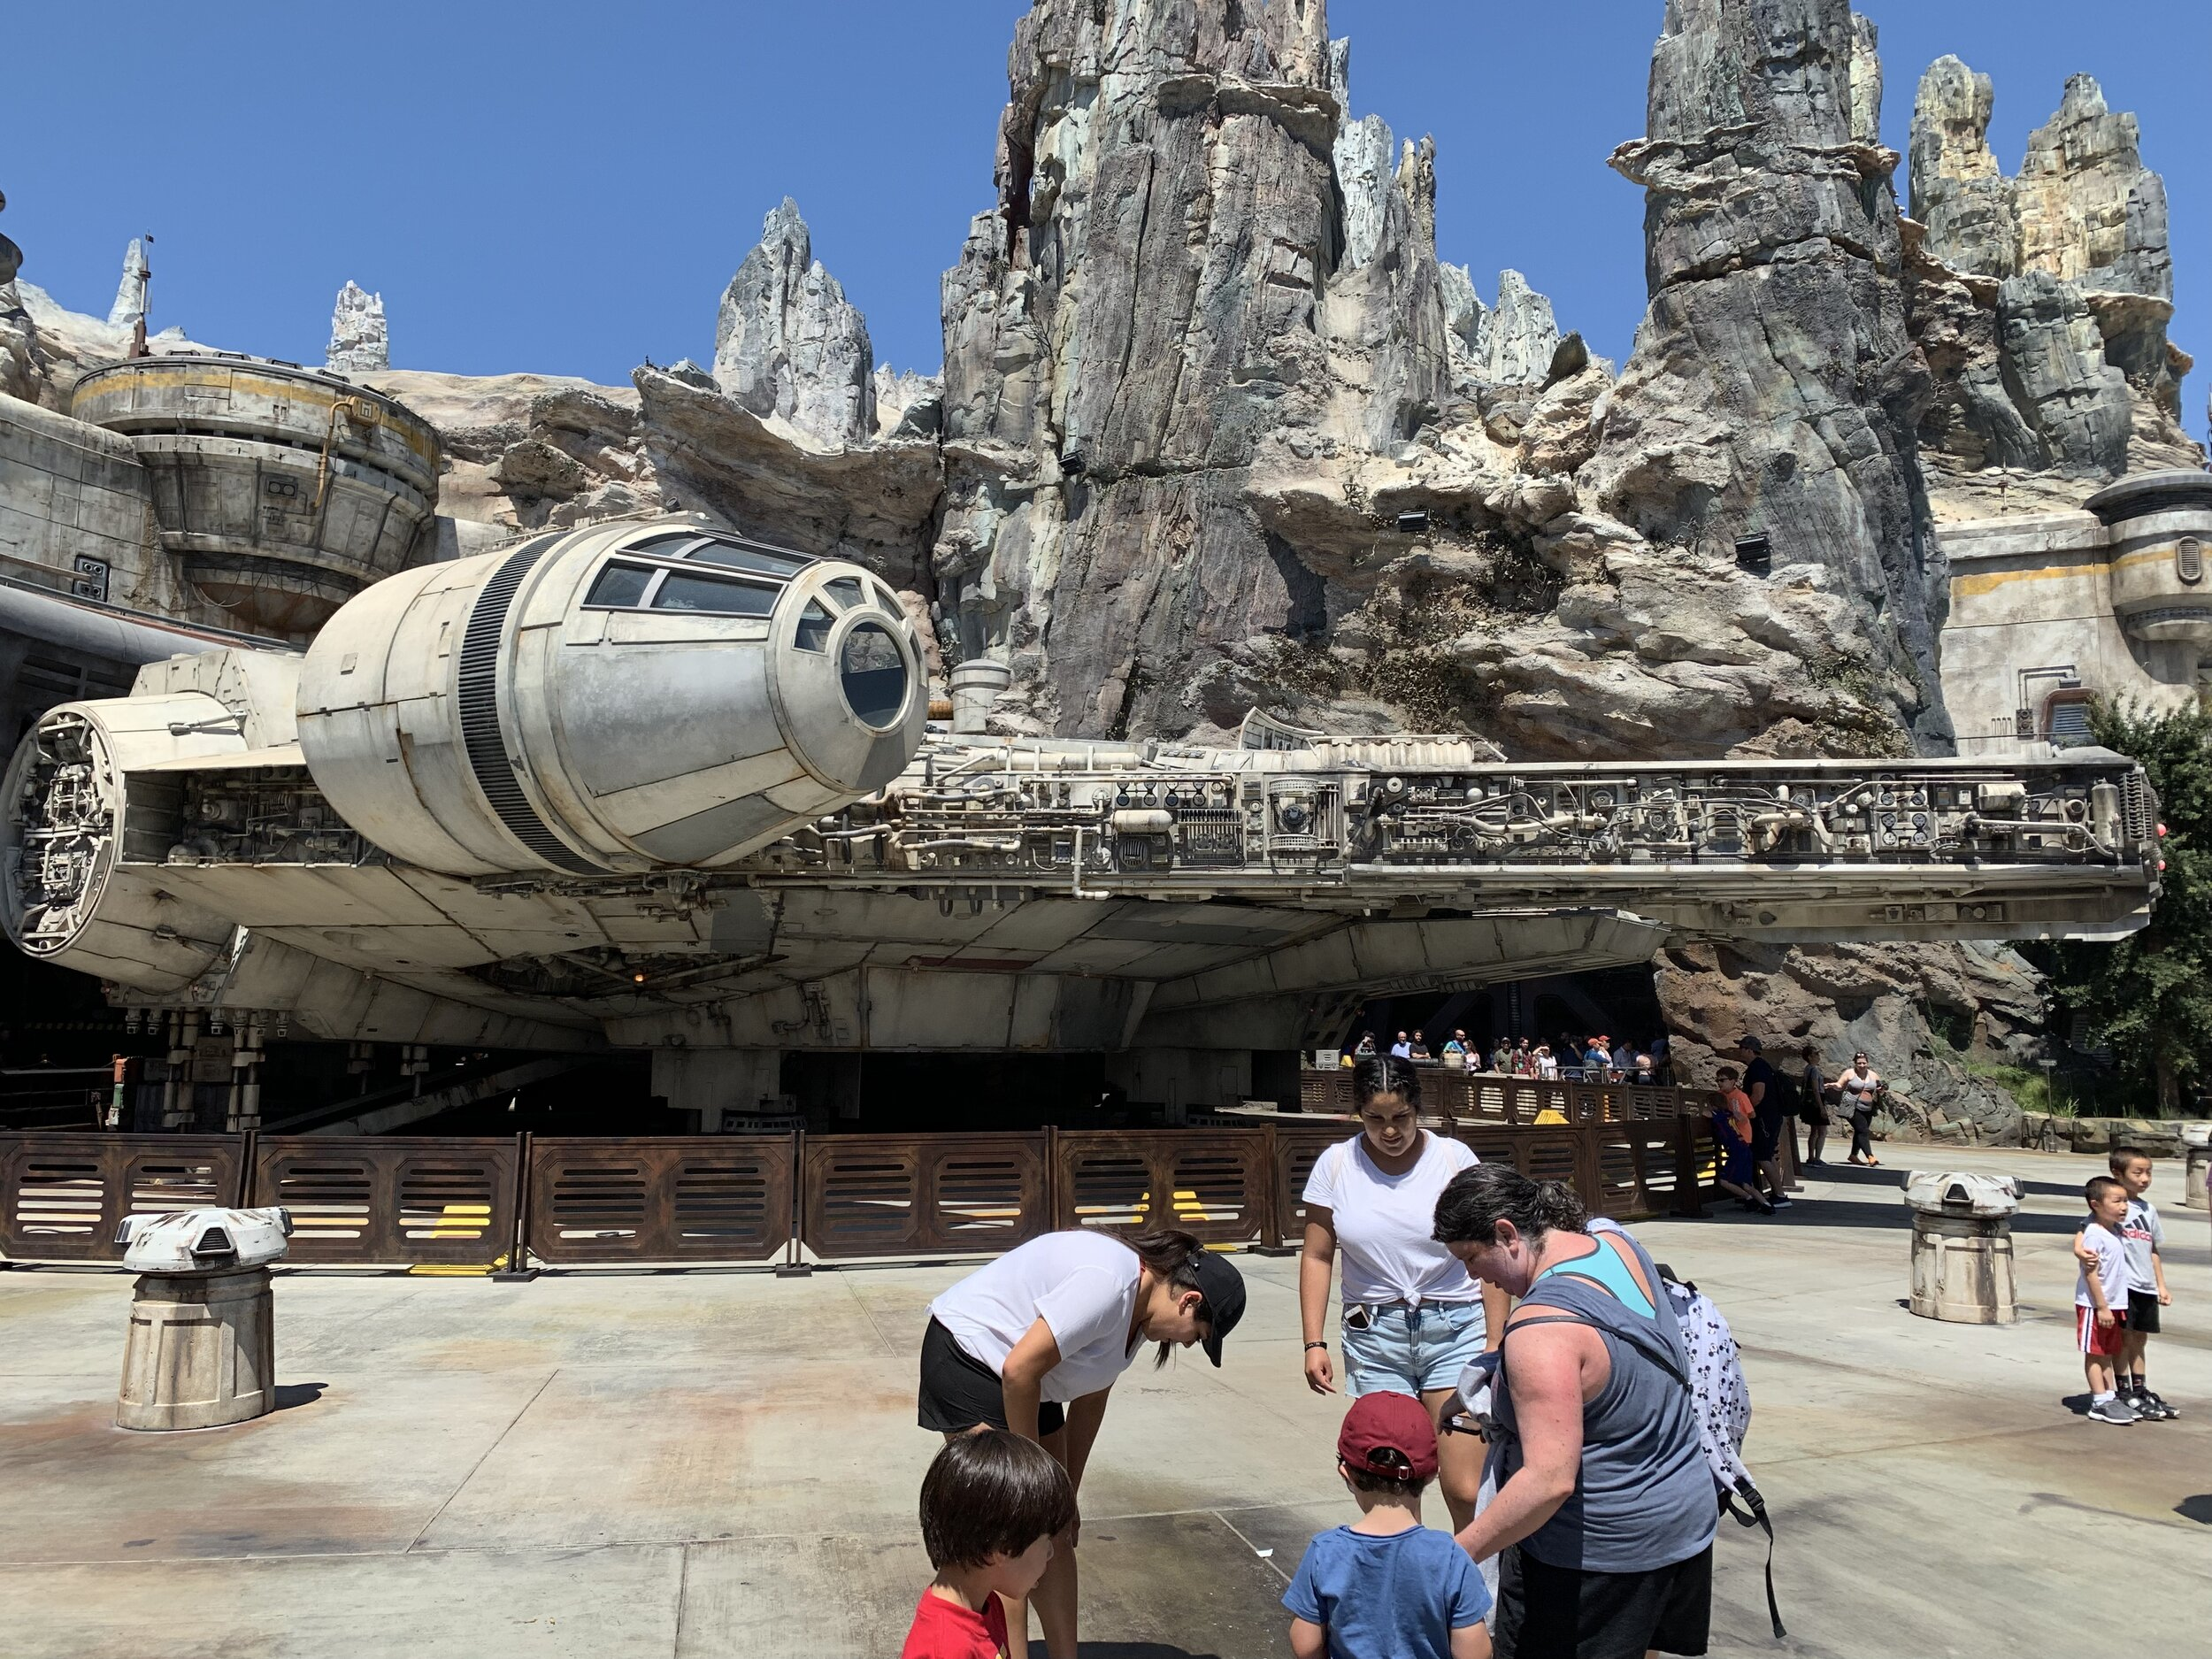 Galaxy's Edge - Millenium Falcon